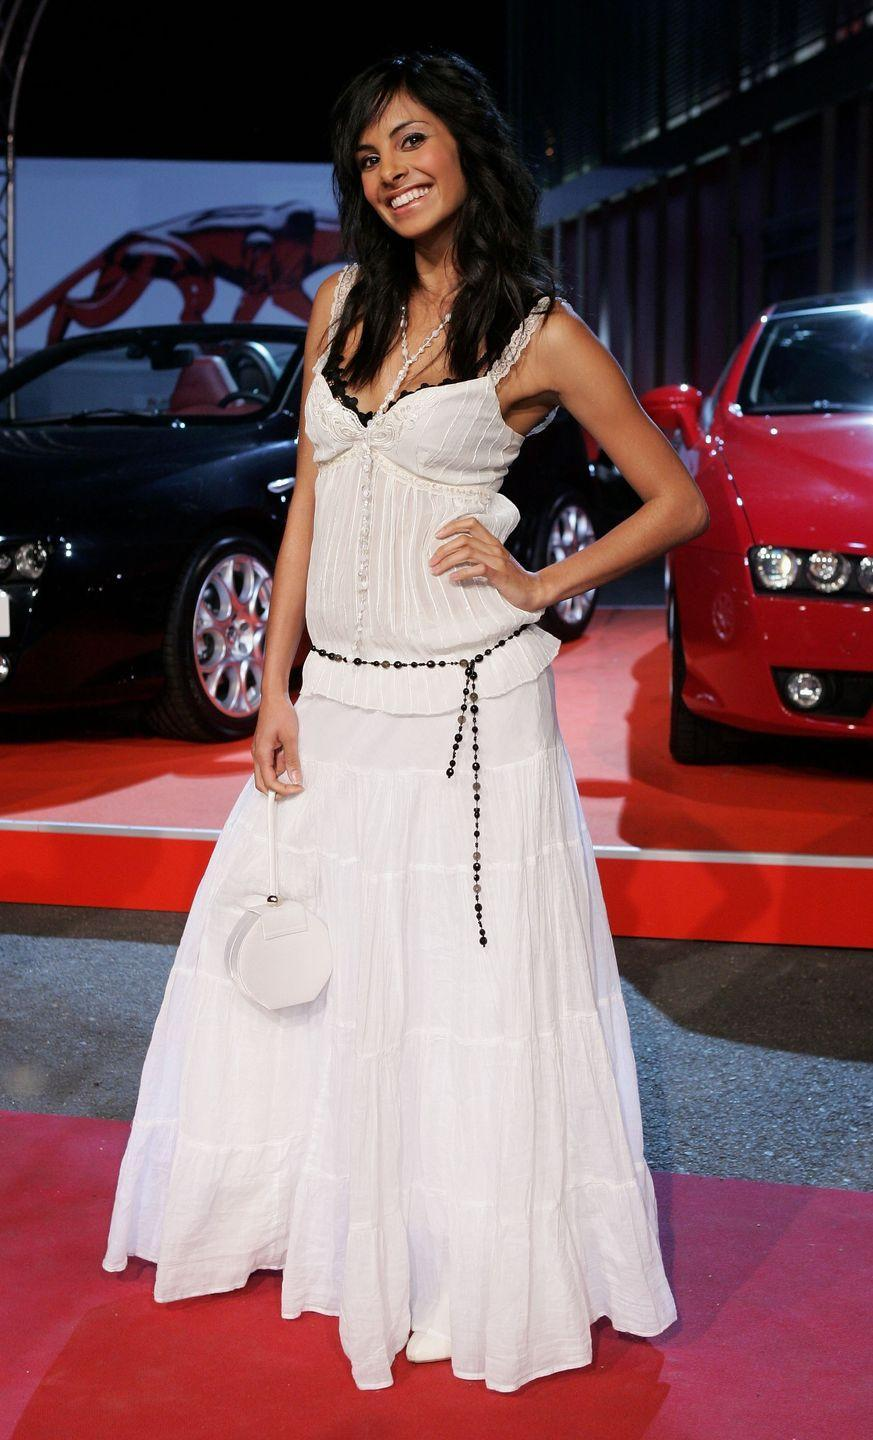 <p>Long, voluminous skirts paired with a random belt were big once. While tiered maxi skirts and dresses have recently become popular, full-on peasant skirts are something you can likely say goodbye to.</p>